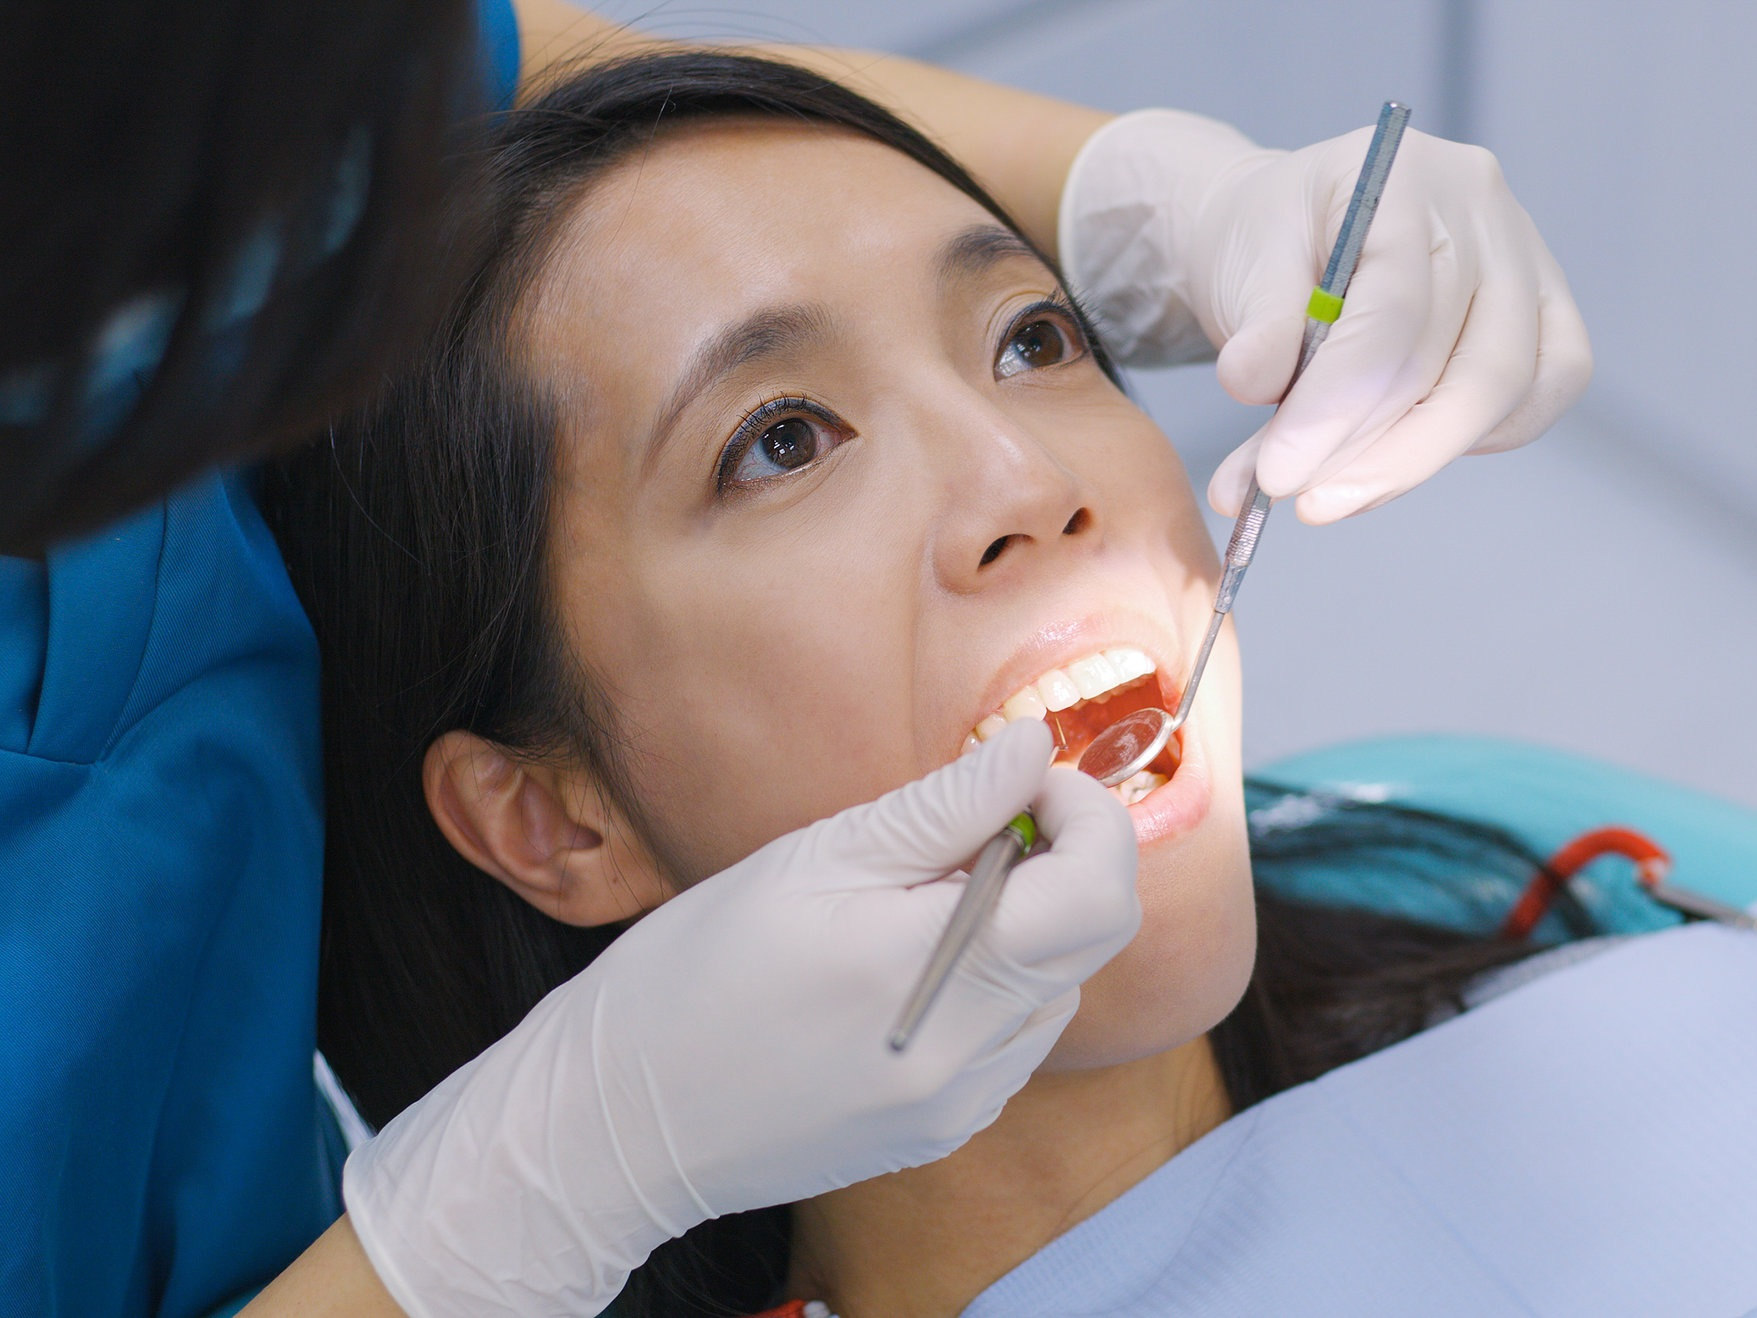 Oral Hygienist Cleaning Woman's Teeth at Total Health.